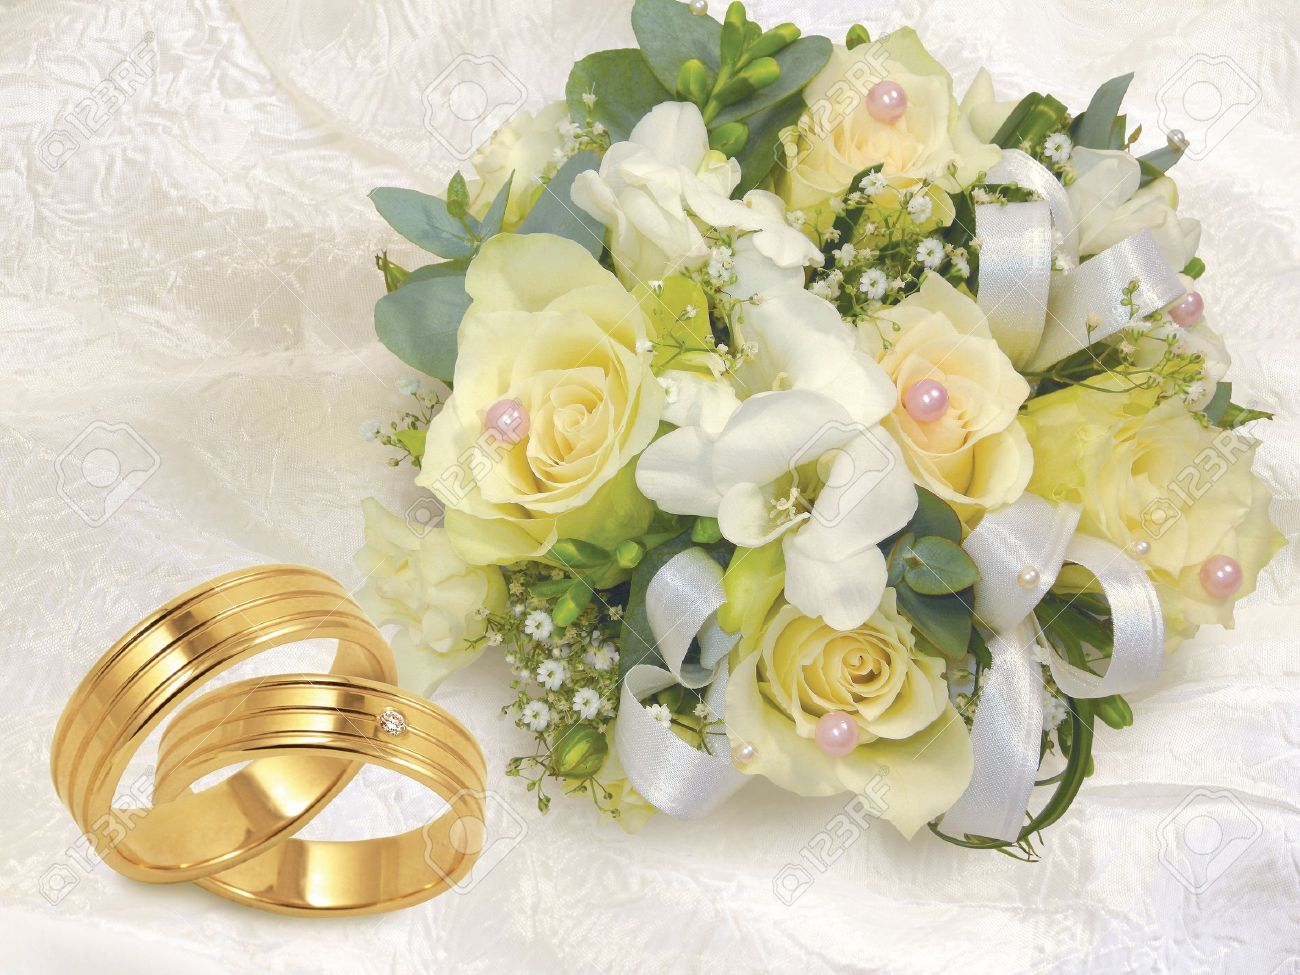 rings stock shutterstock photo bouquet with image wedding